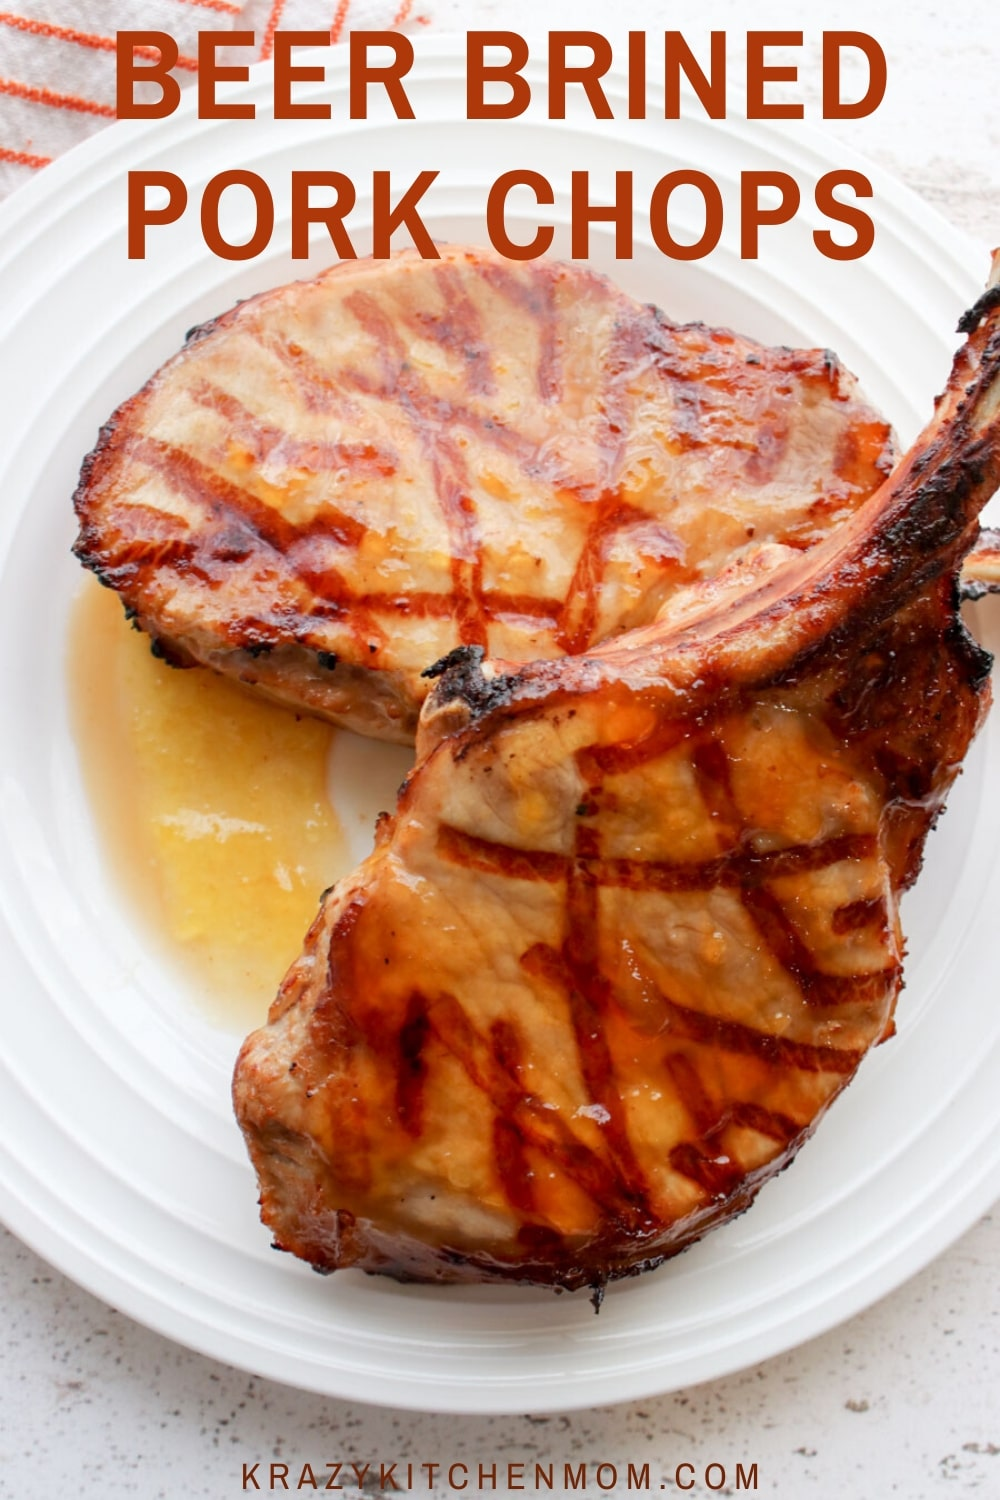 Beer Brined Pork Chops are made with bone-in pork chops marinated in spices, vinegar, Worcestershire sauce, and Lager Beer. via @krazykitchenmom